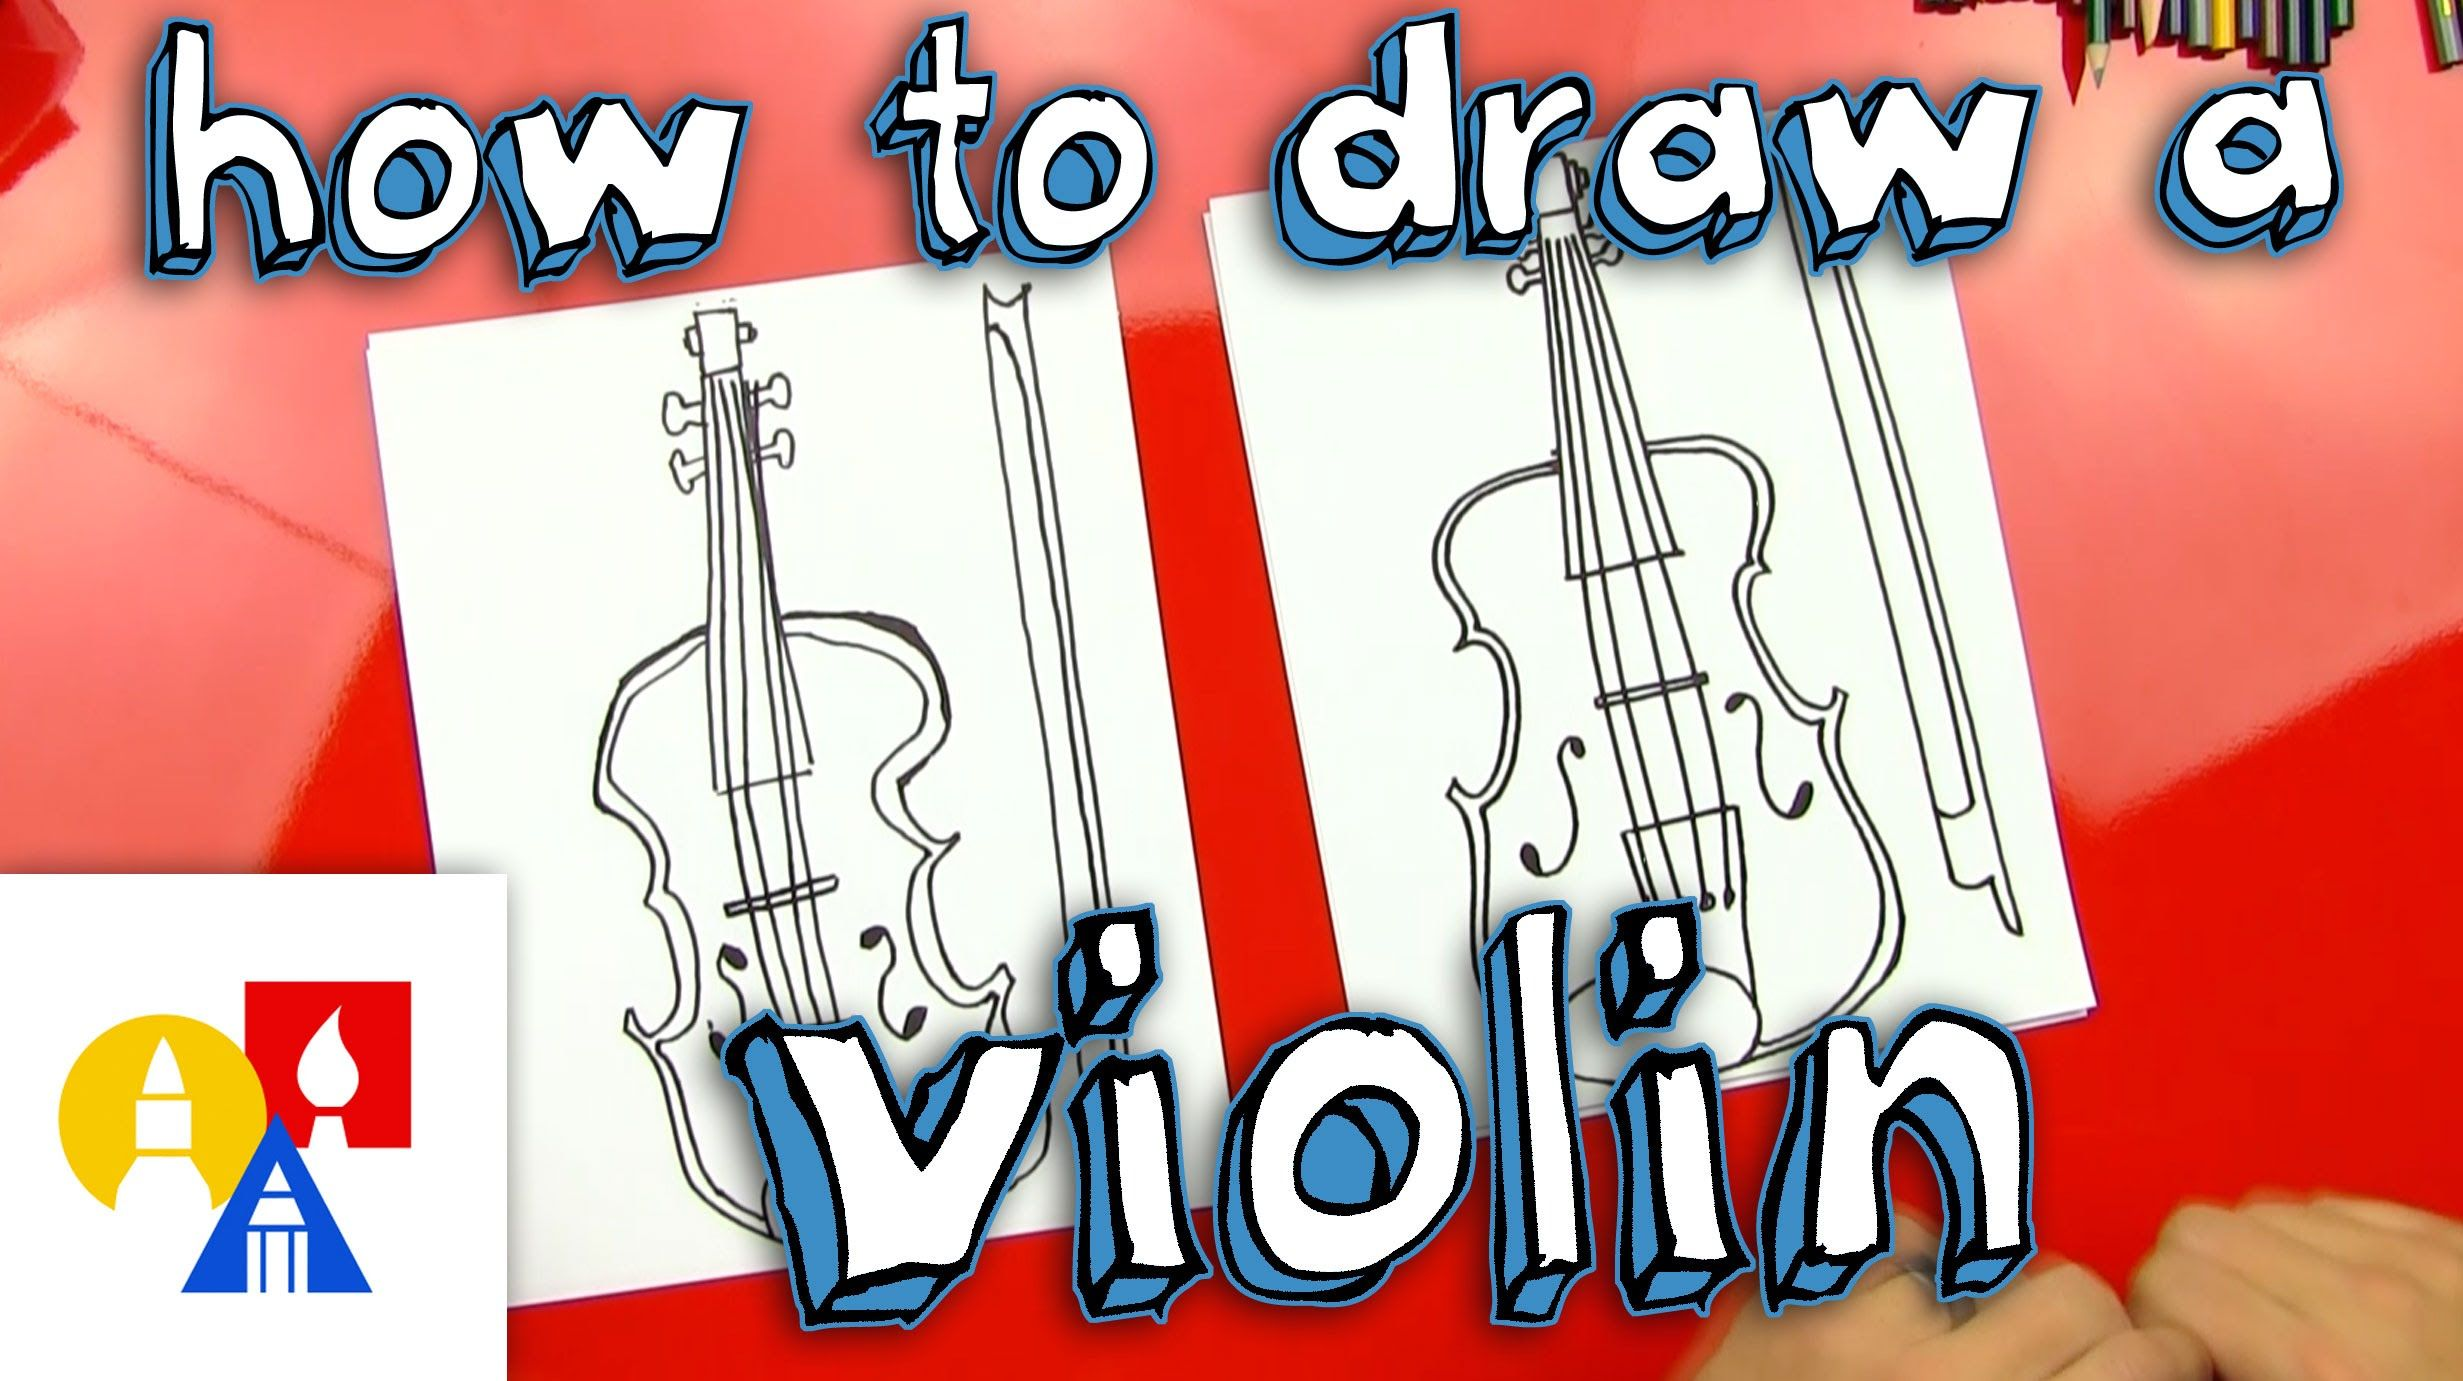 How To Draw A Violin | Violin, Art for kids hub, Violin art